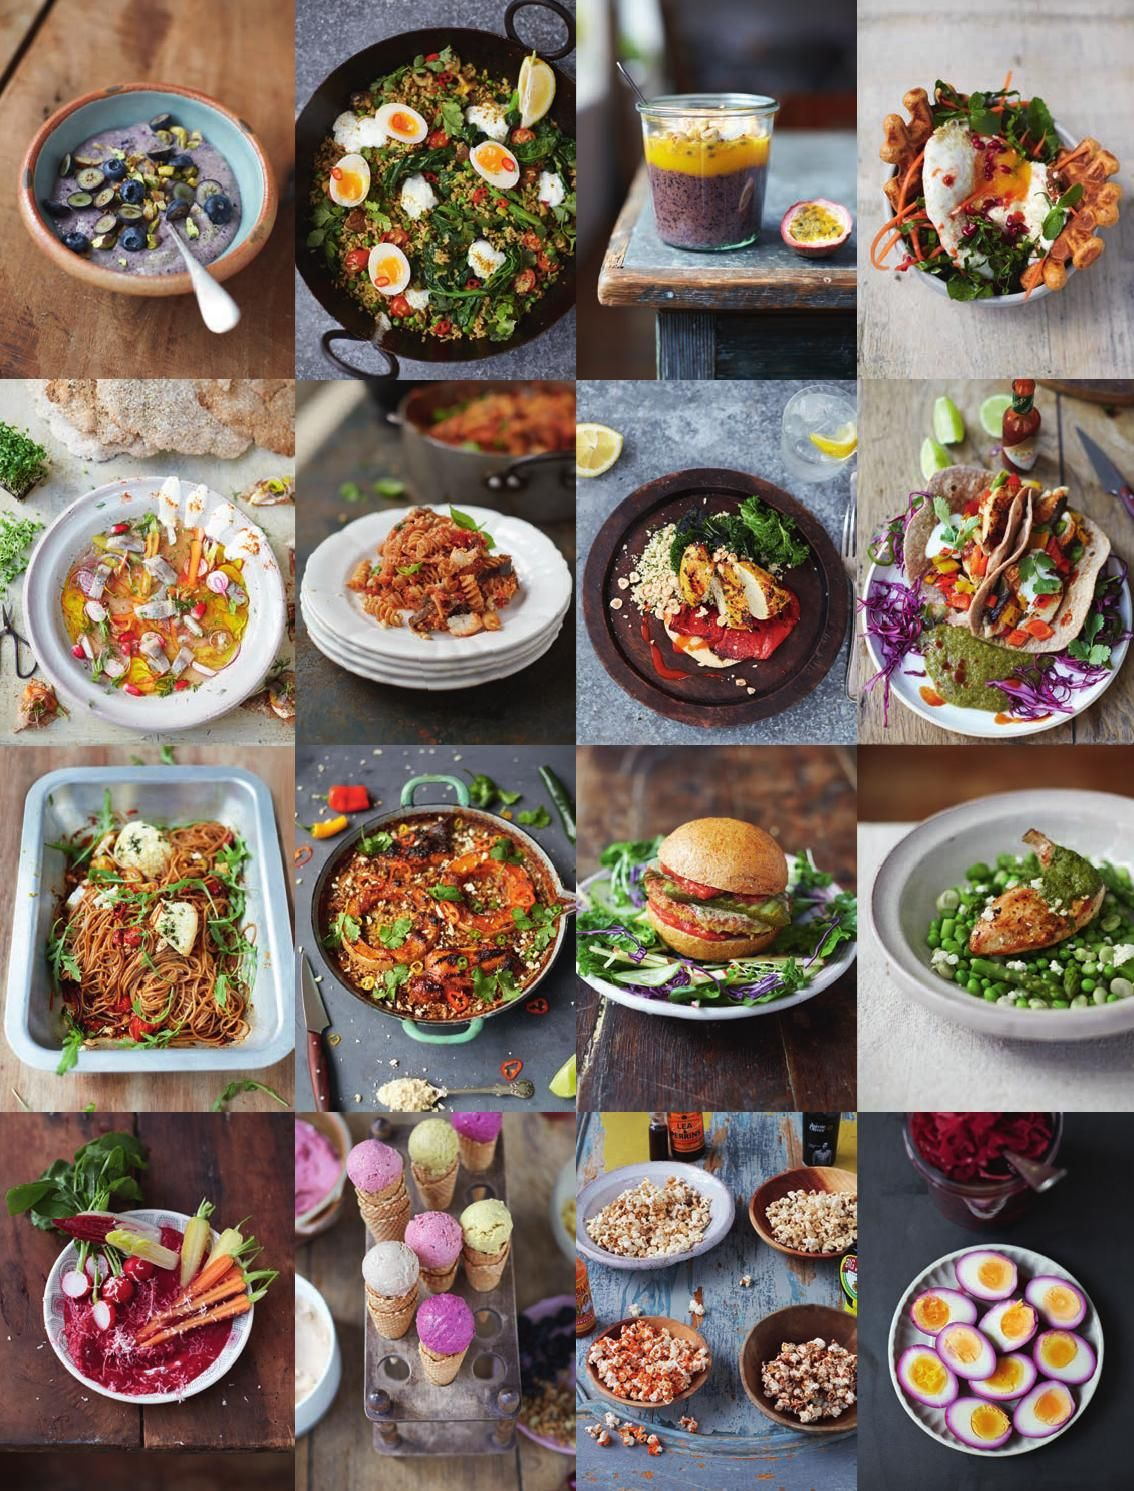 Issuu everyday super food by jamie oliver von penguin books good issuu everyday super food by jamie oliver von penguin books forumfinder Choice Image